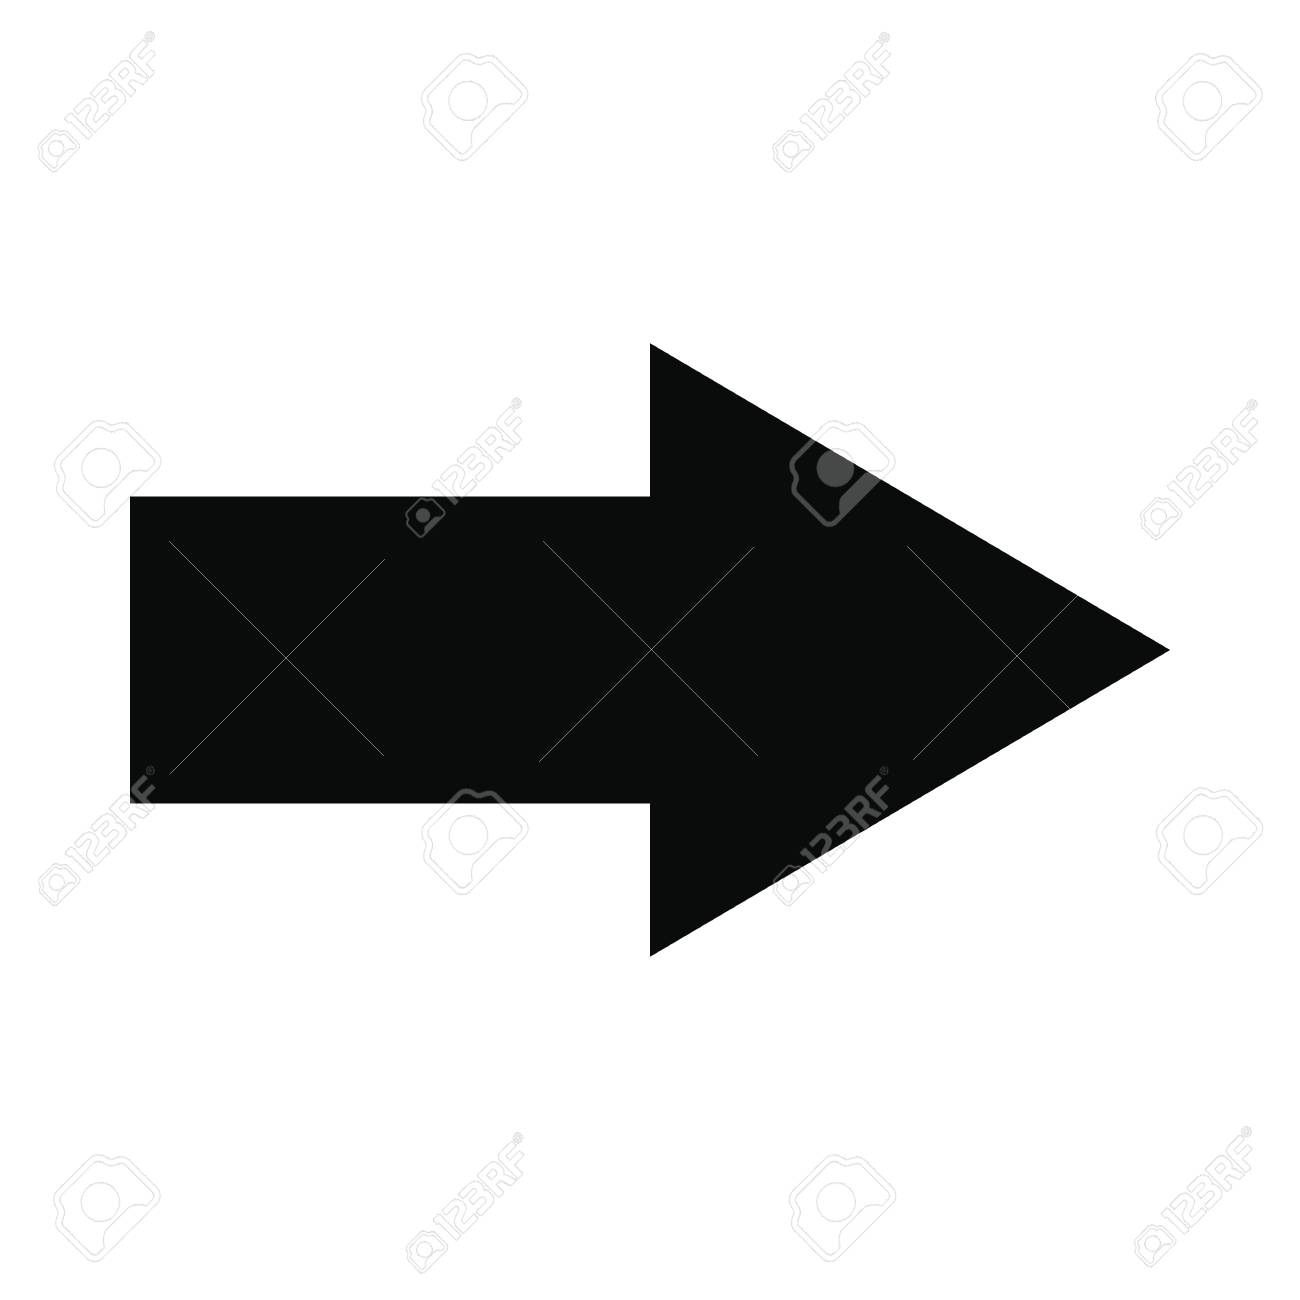 Right arrow black simple icon isolated on white background - 51973336